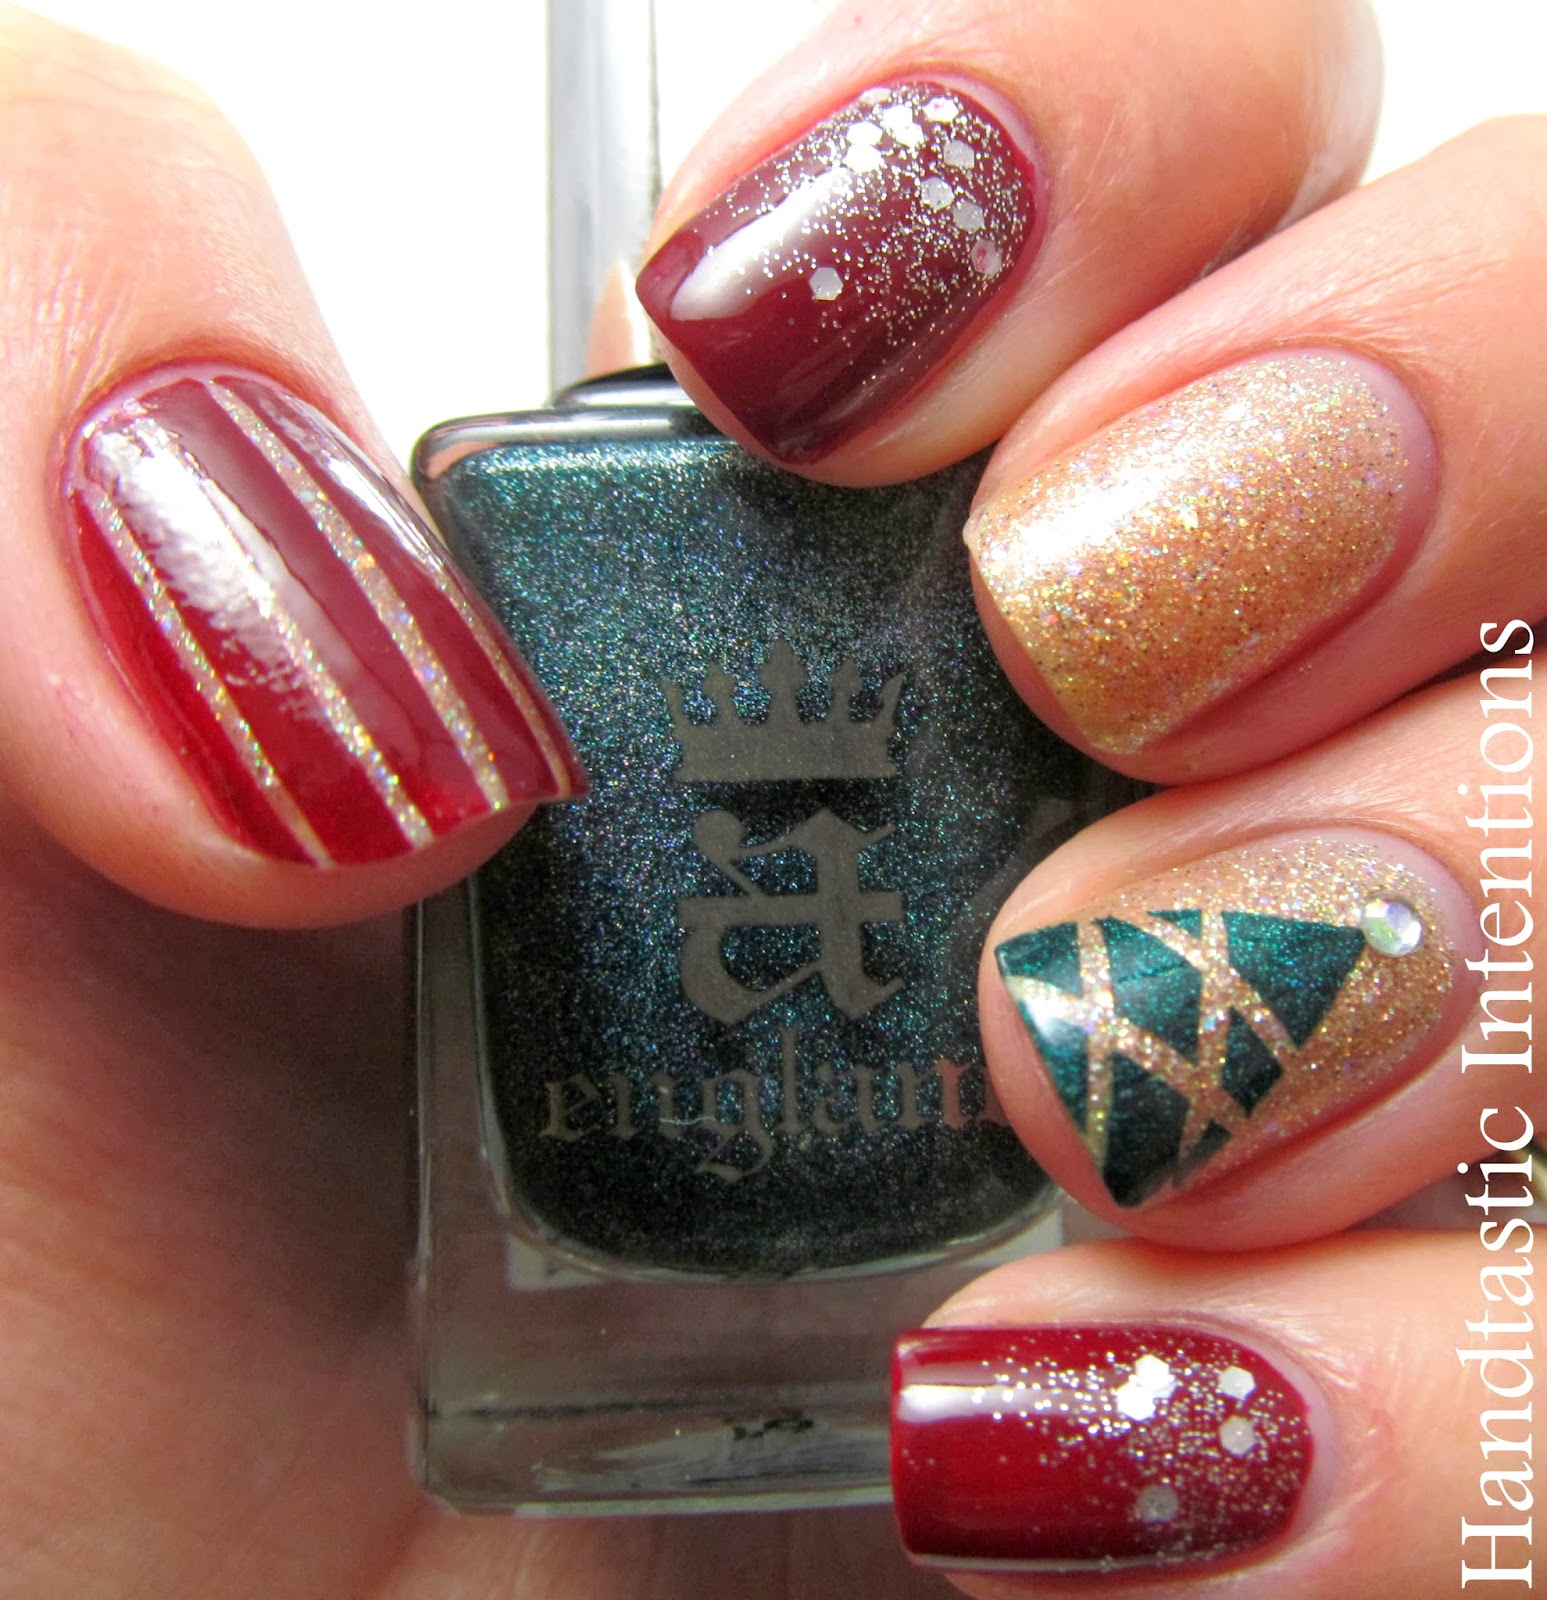 Handtastic Intentions Nail Art Christmas Glitter